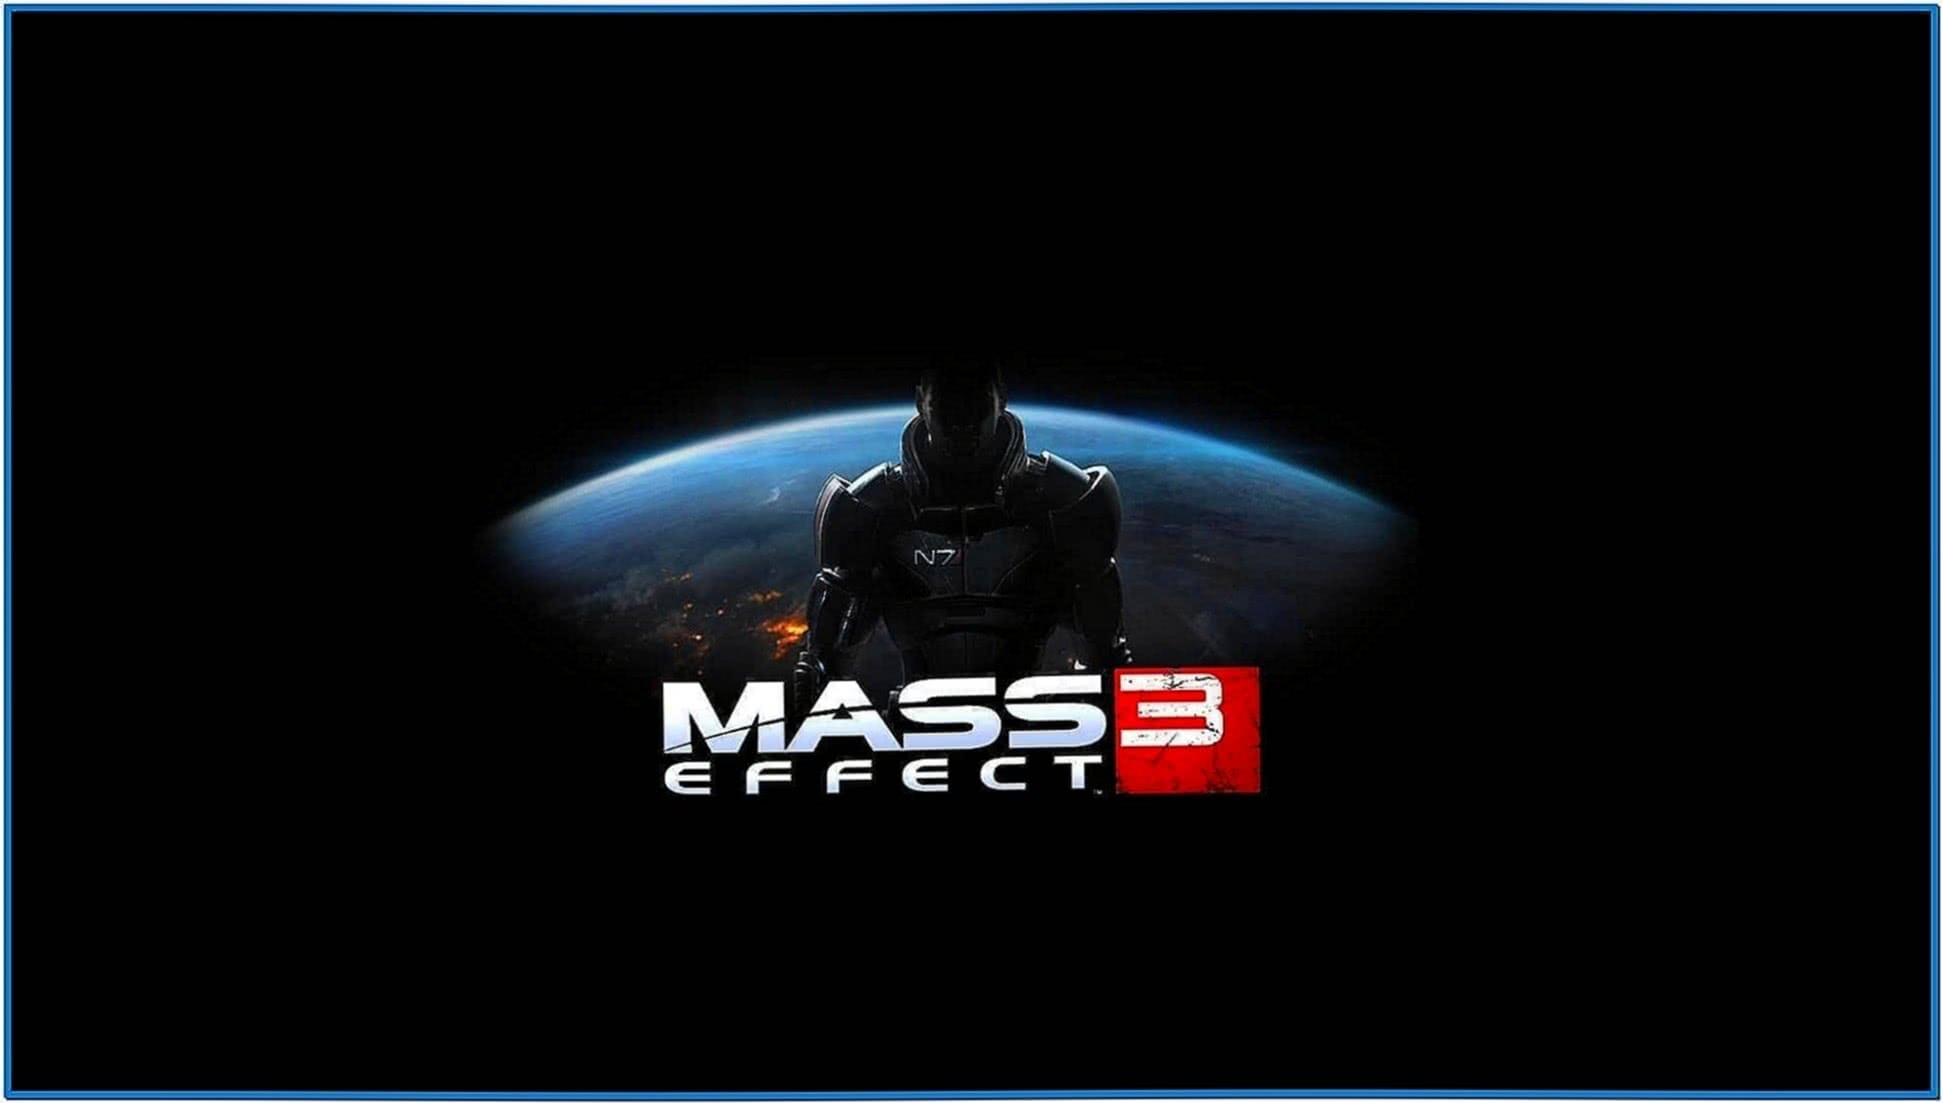 Windows 7 Mass Effect Screensaver